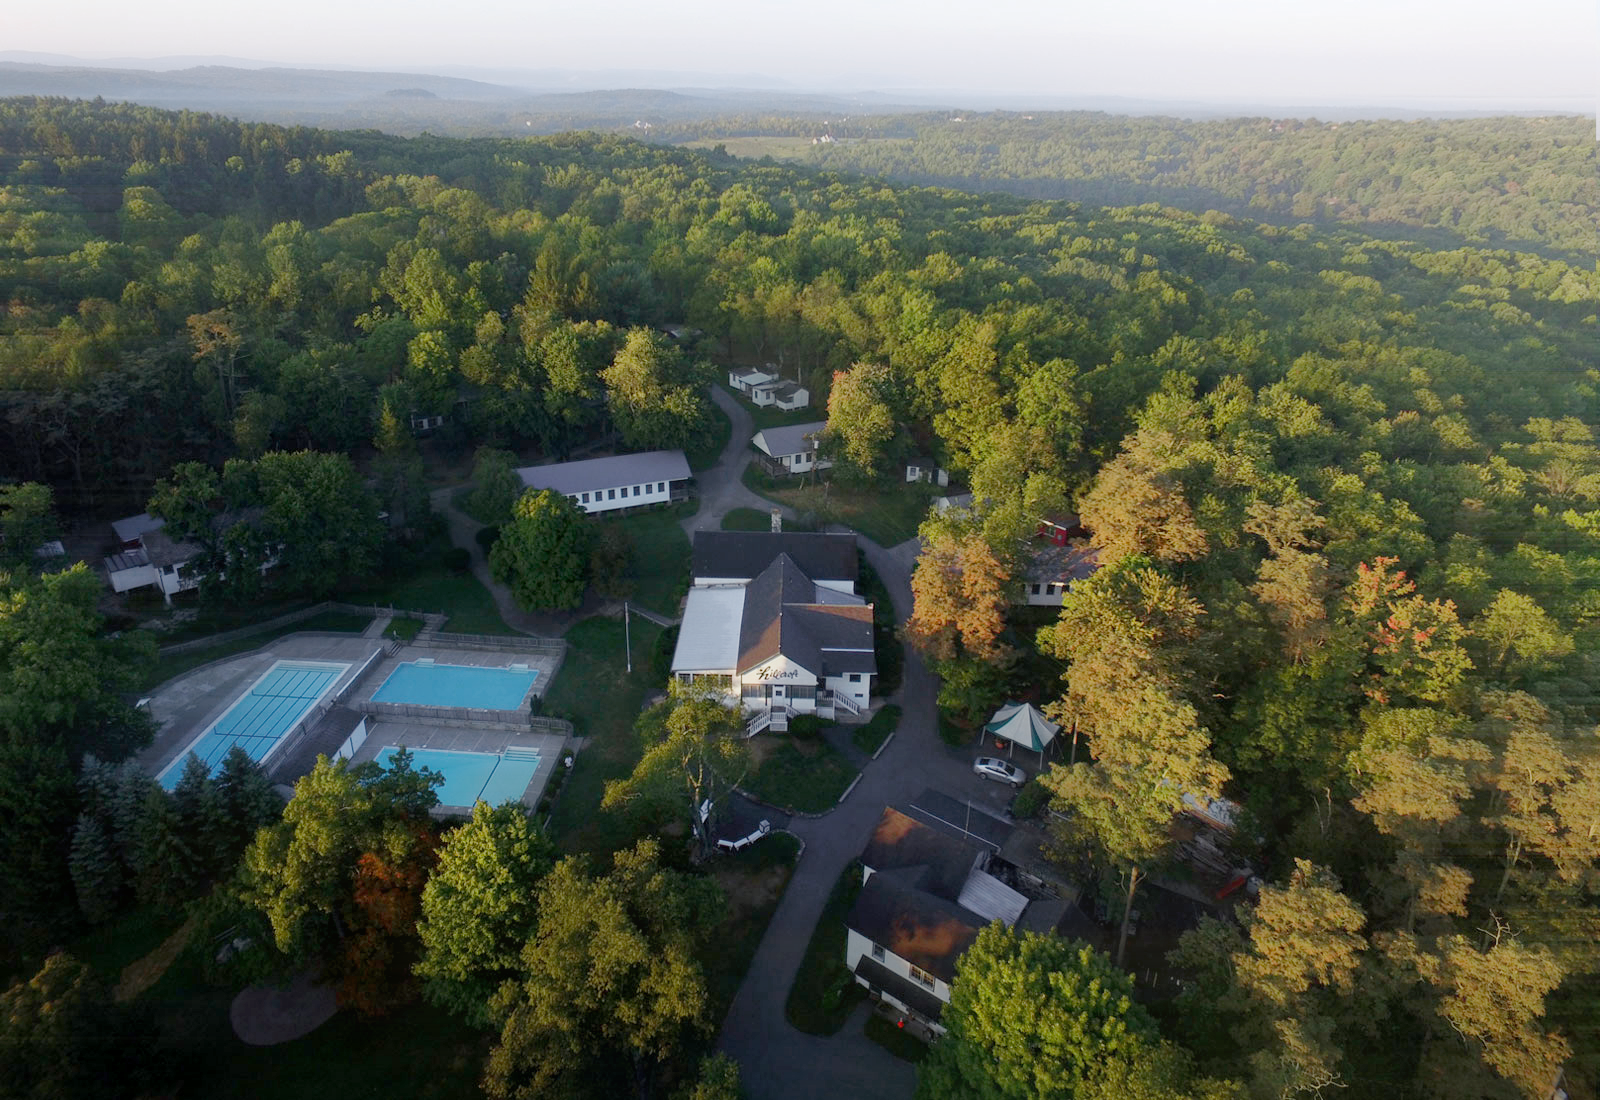 Aerial view of Hillcroft Day Camp